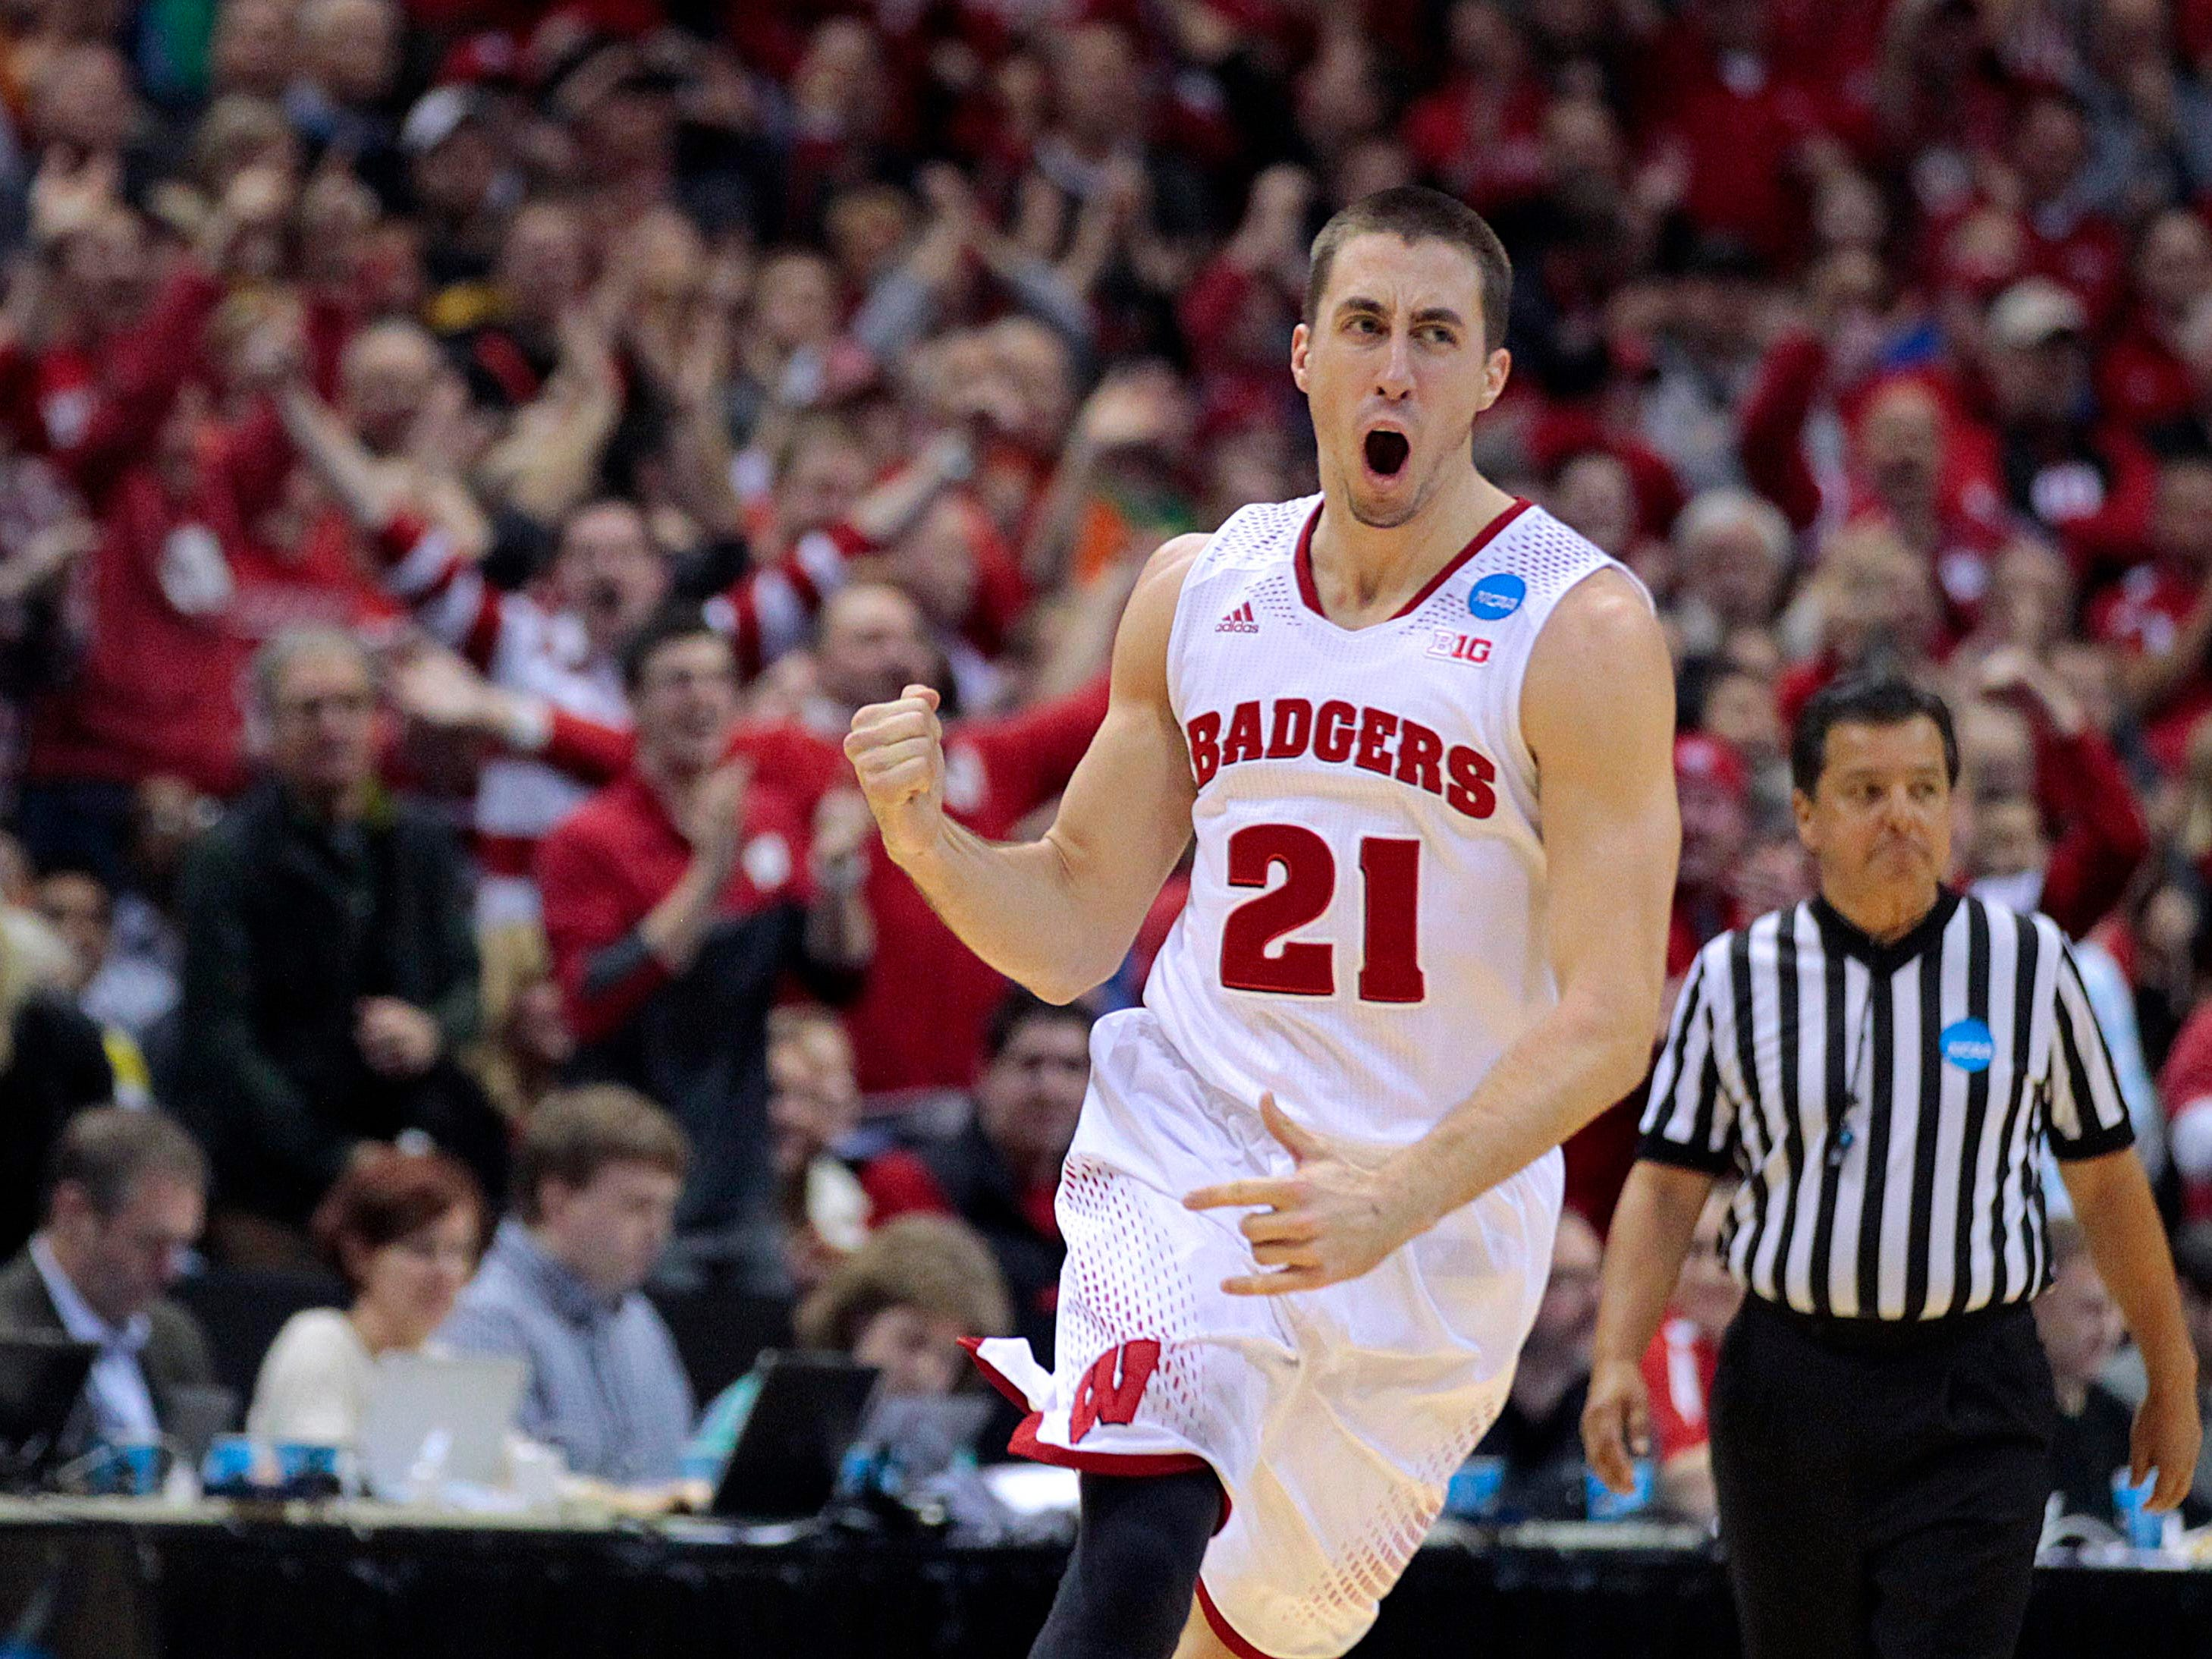 Wisconsin Badgers guard Josh Gasser (21) celebrates in the final minute during Wisconsin's 85-77 win over Oregon during he  third round of the NCAA Men's Basketball Championship between Wisconsin and Oregon at the BMO Harris Bradley Center in Milwaukee, Wisconsin, Saturday, March 22, 2014.